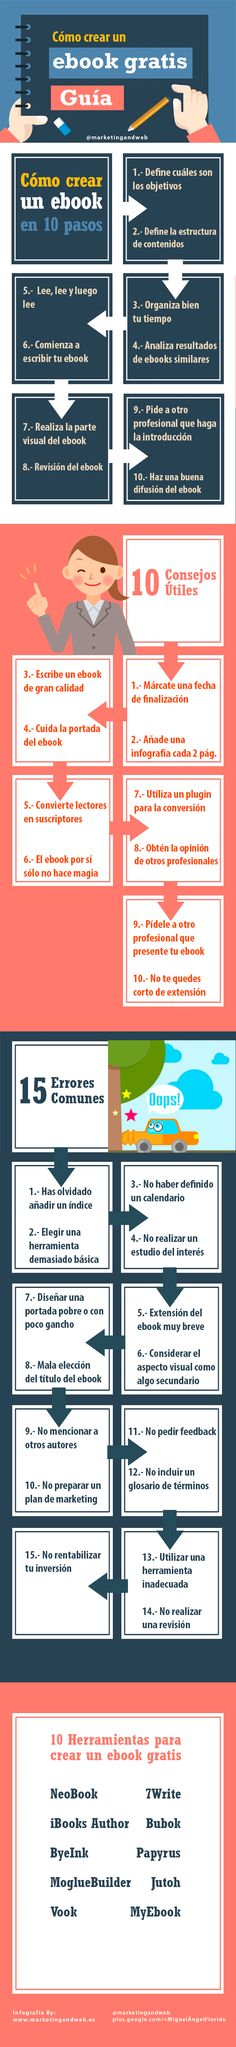 Cómo crear un eBook gratis #infografia #infographic #marketing